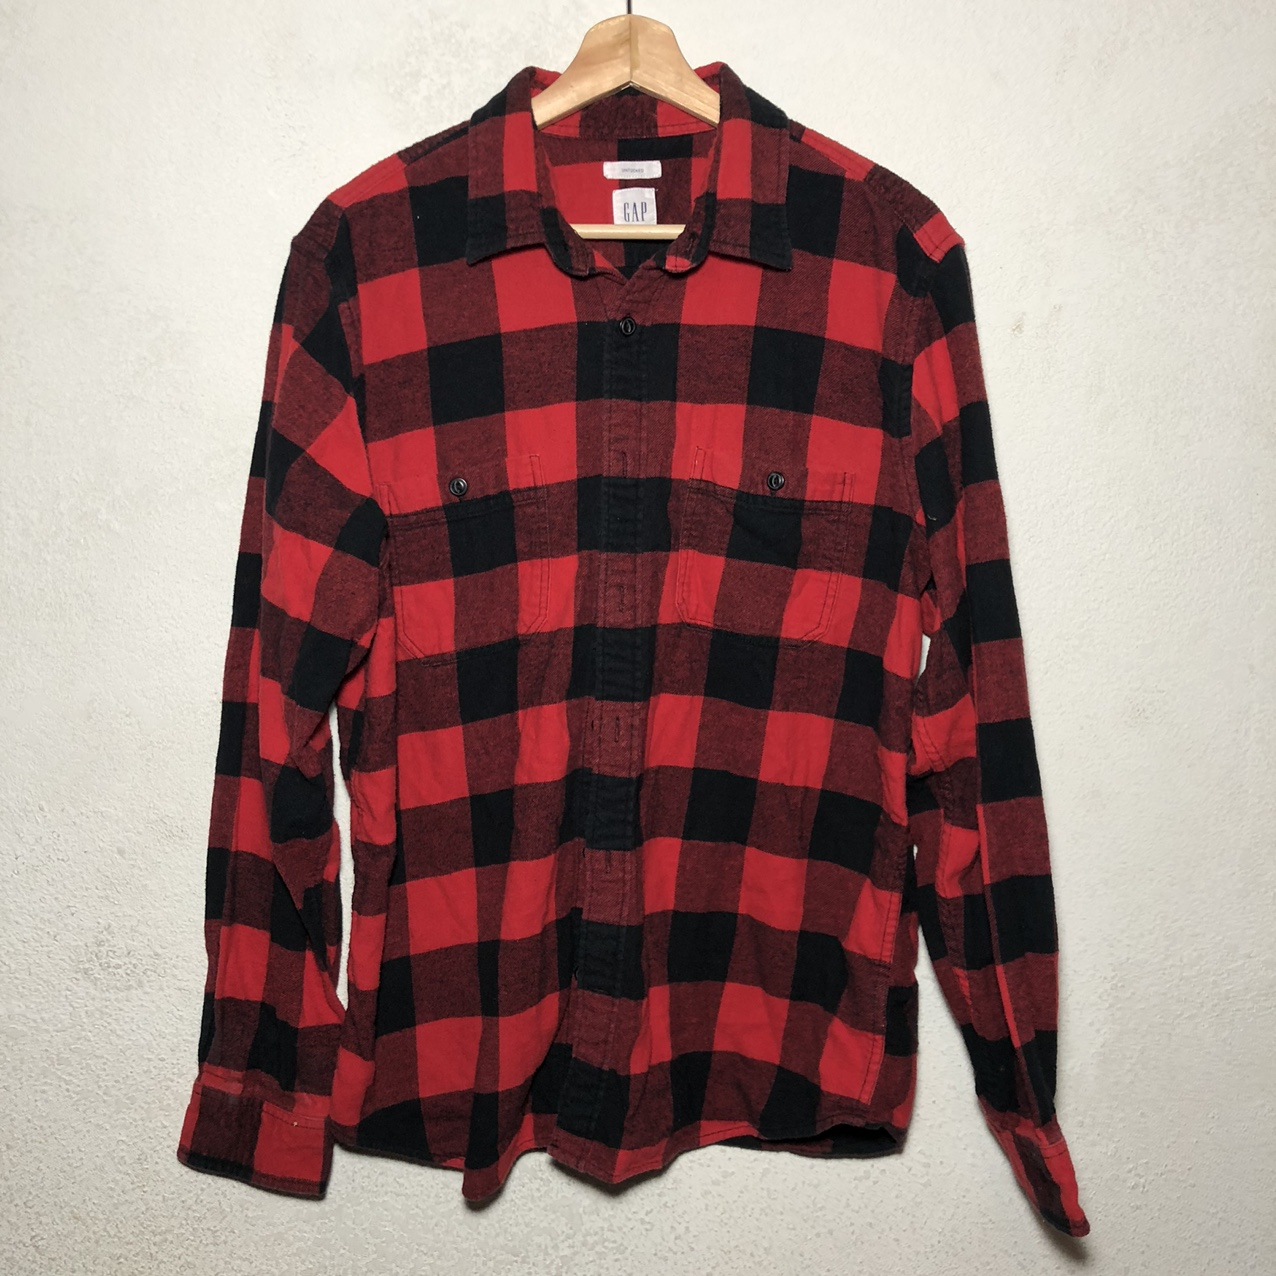 Product Image 1 - Flannel Shirt Condition: Preowned Dm for more